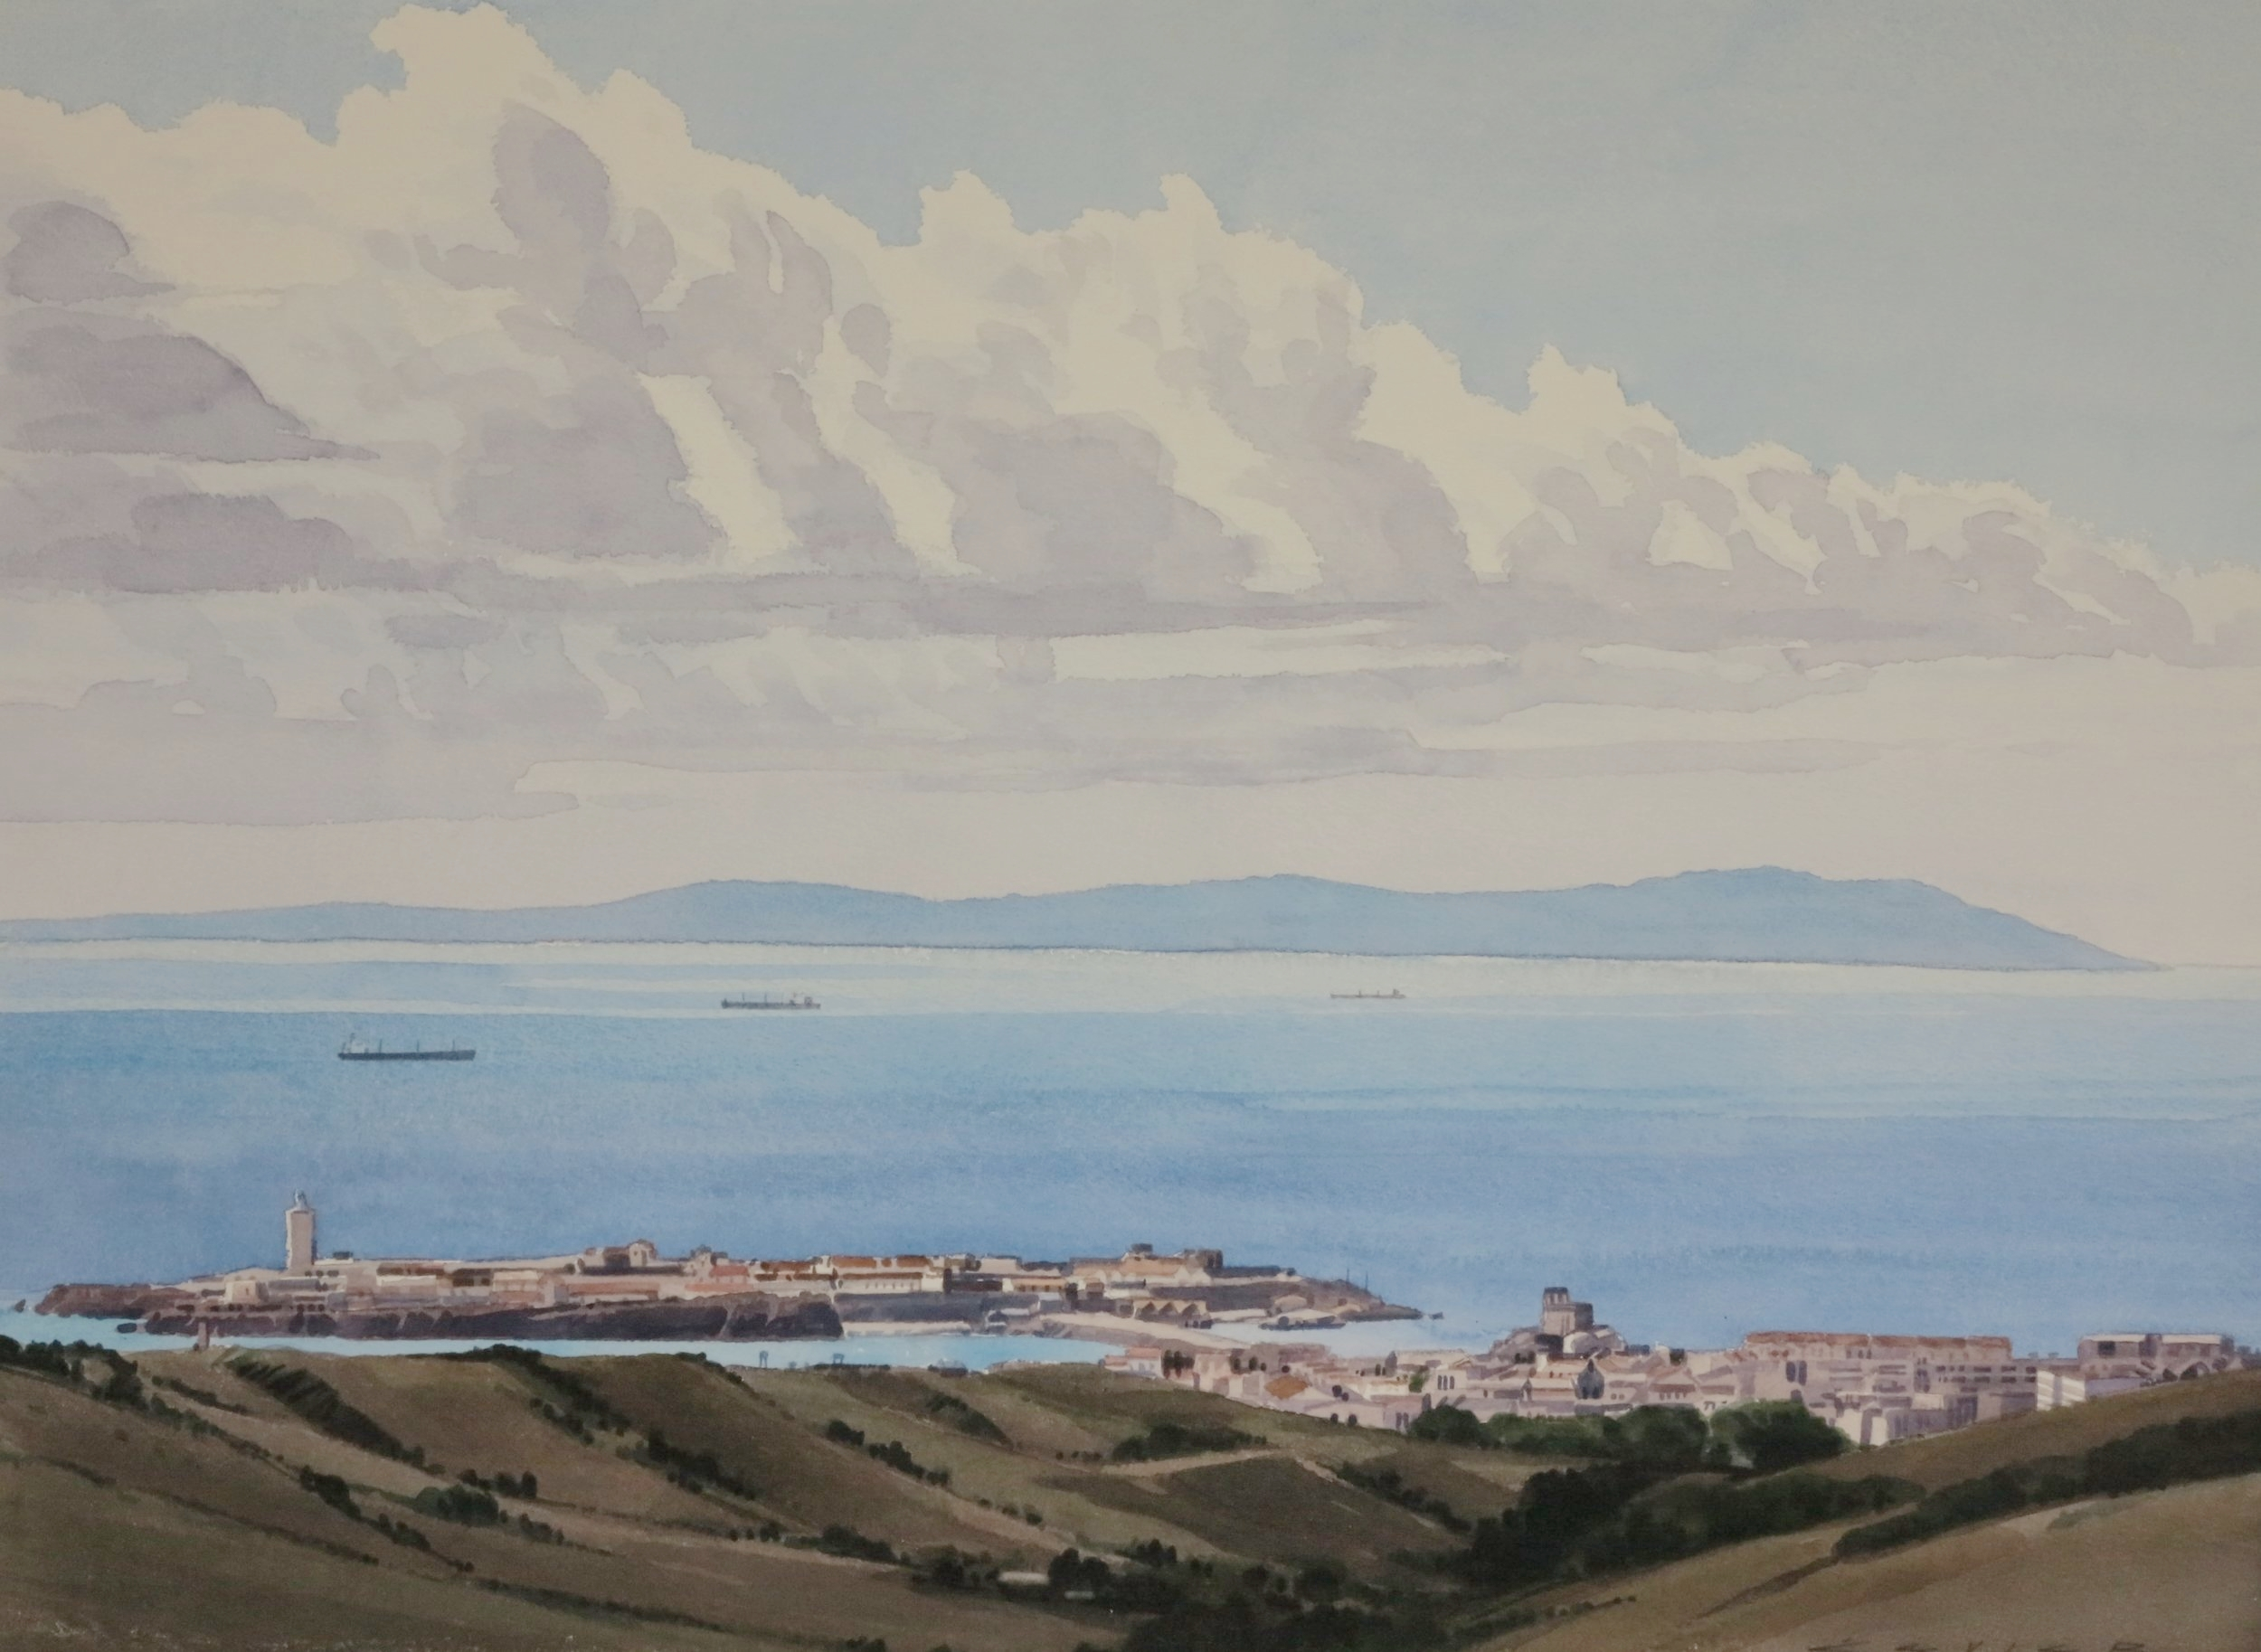 Tarifa, Spain Looking South to Africa 22x x30 watercolour